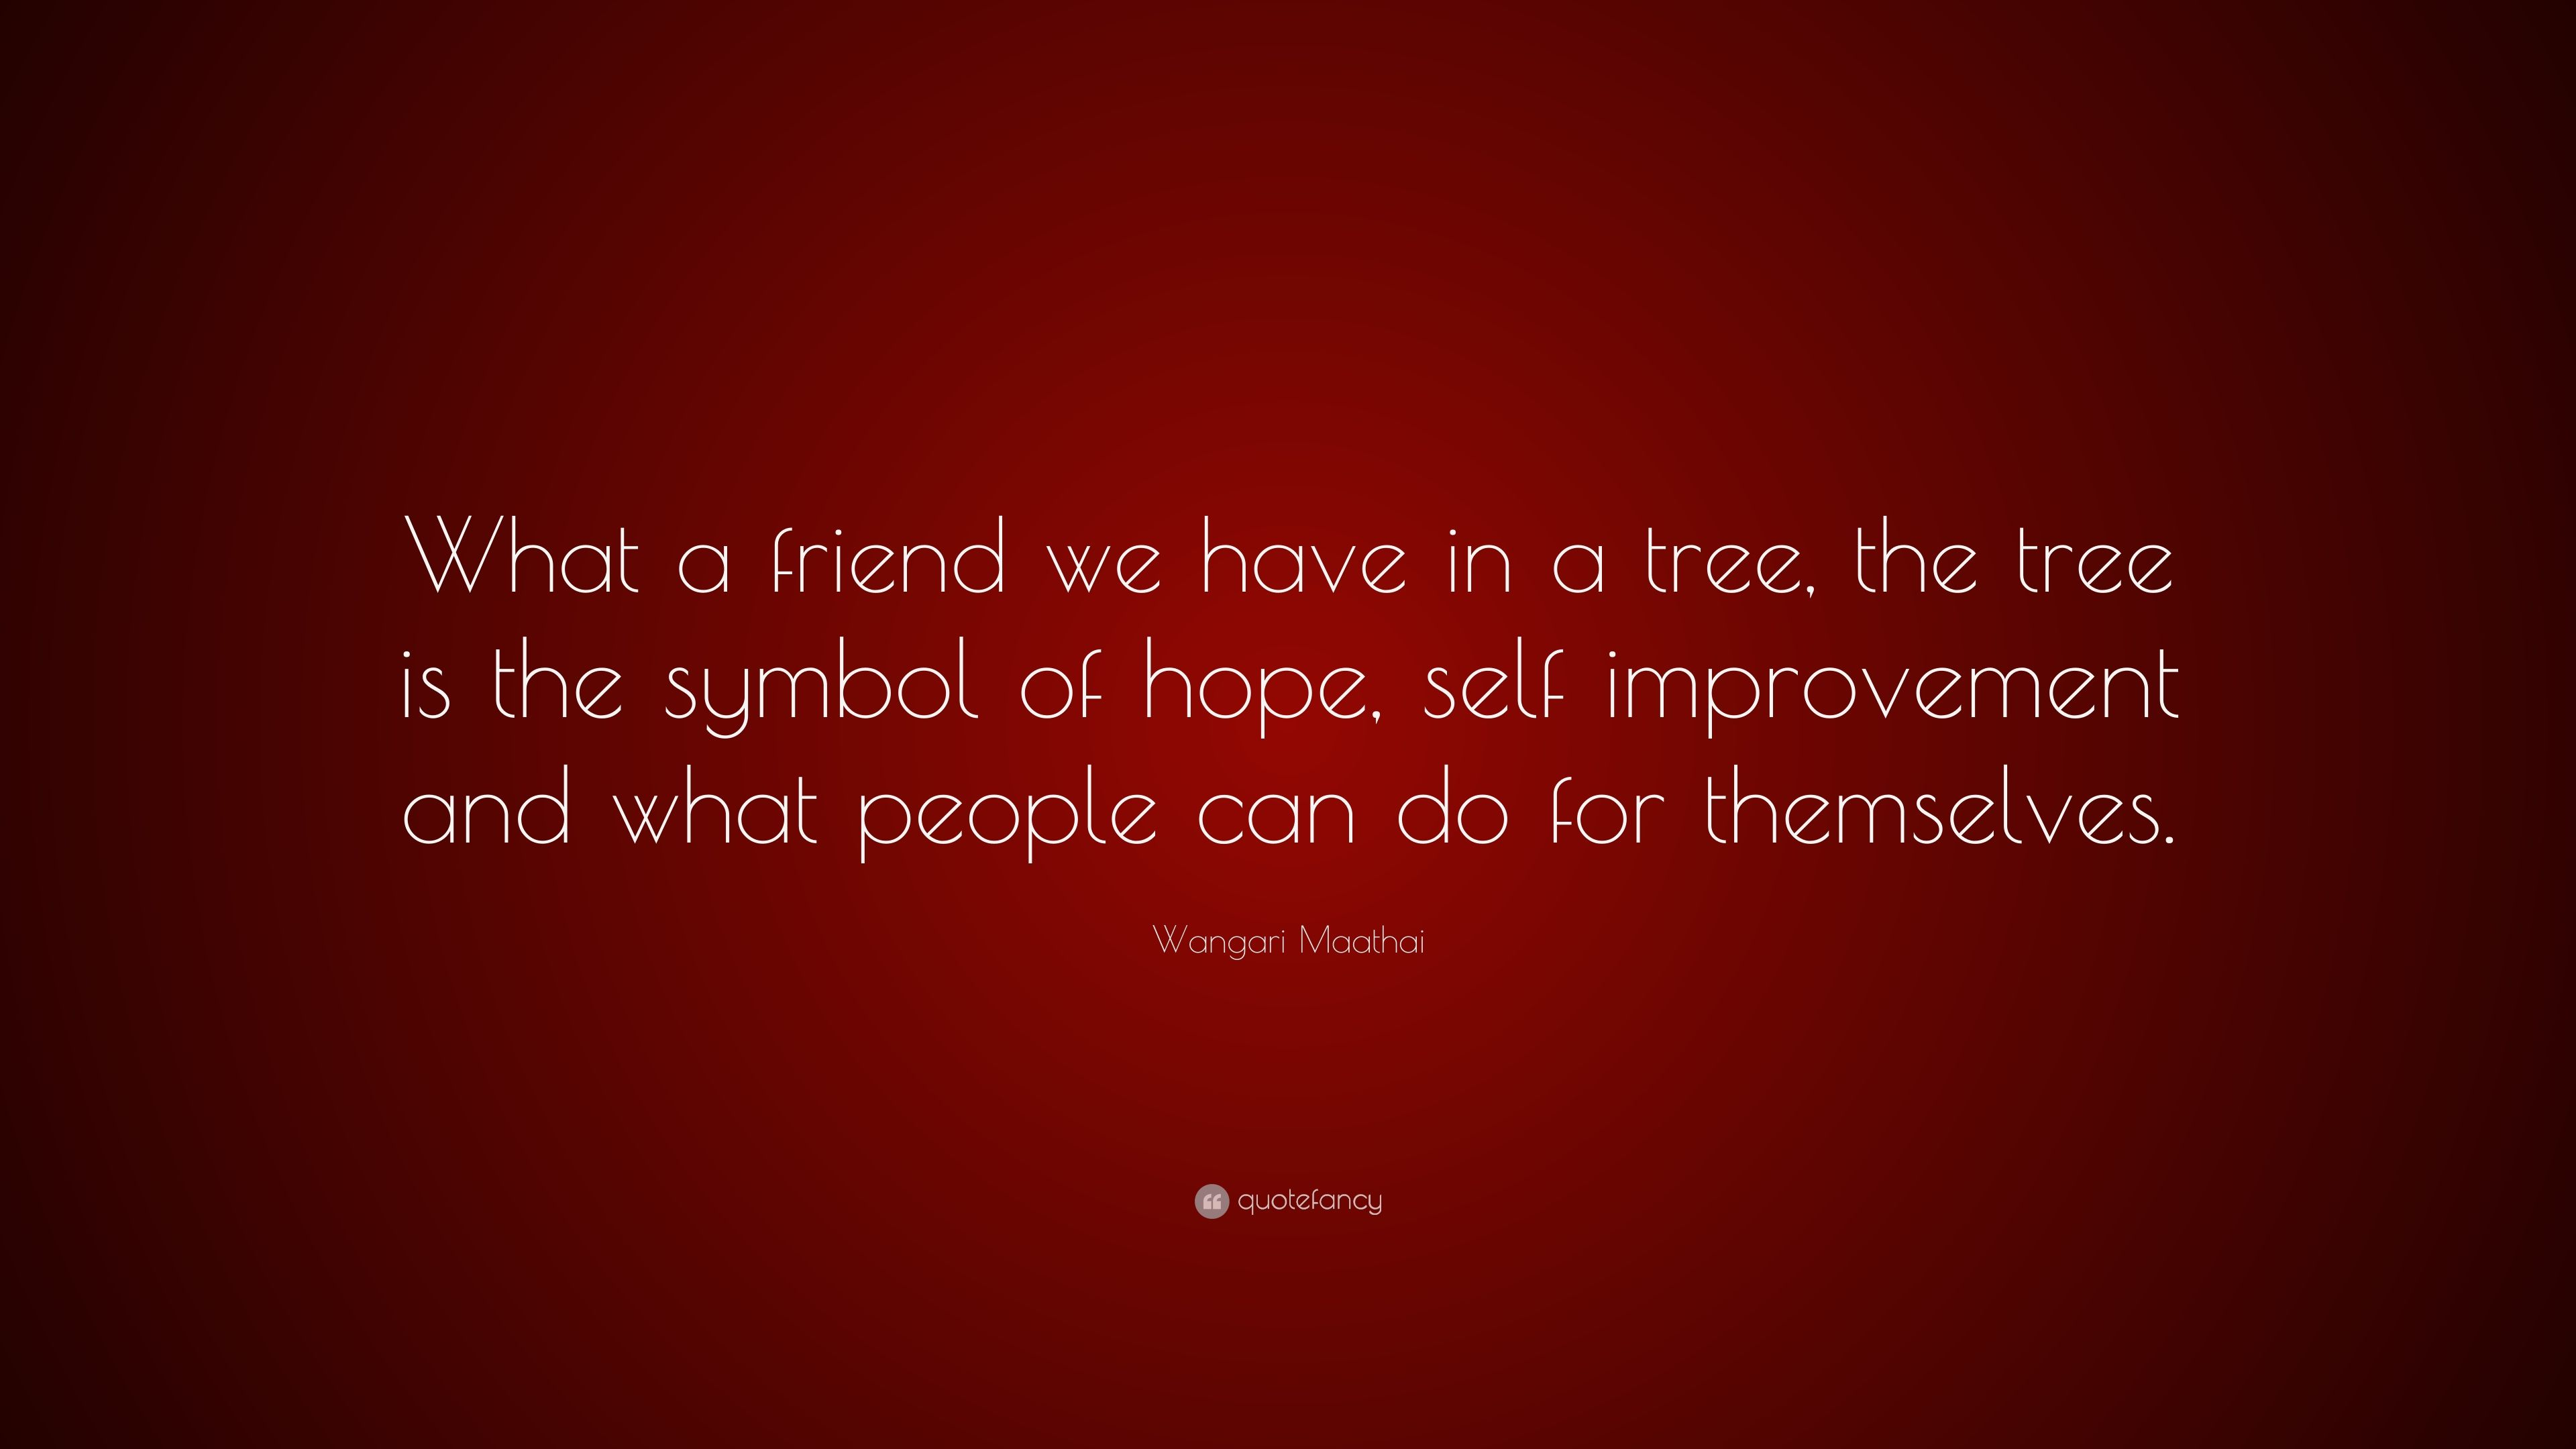 Wangari maathai quote what a friend we have in a tree the tree wangari maathai quote what a friend we have in a tree the tree biocorpaavc Images